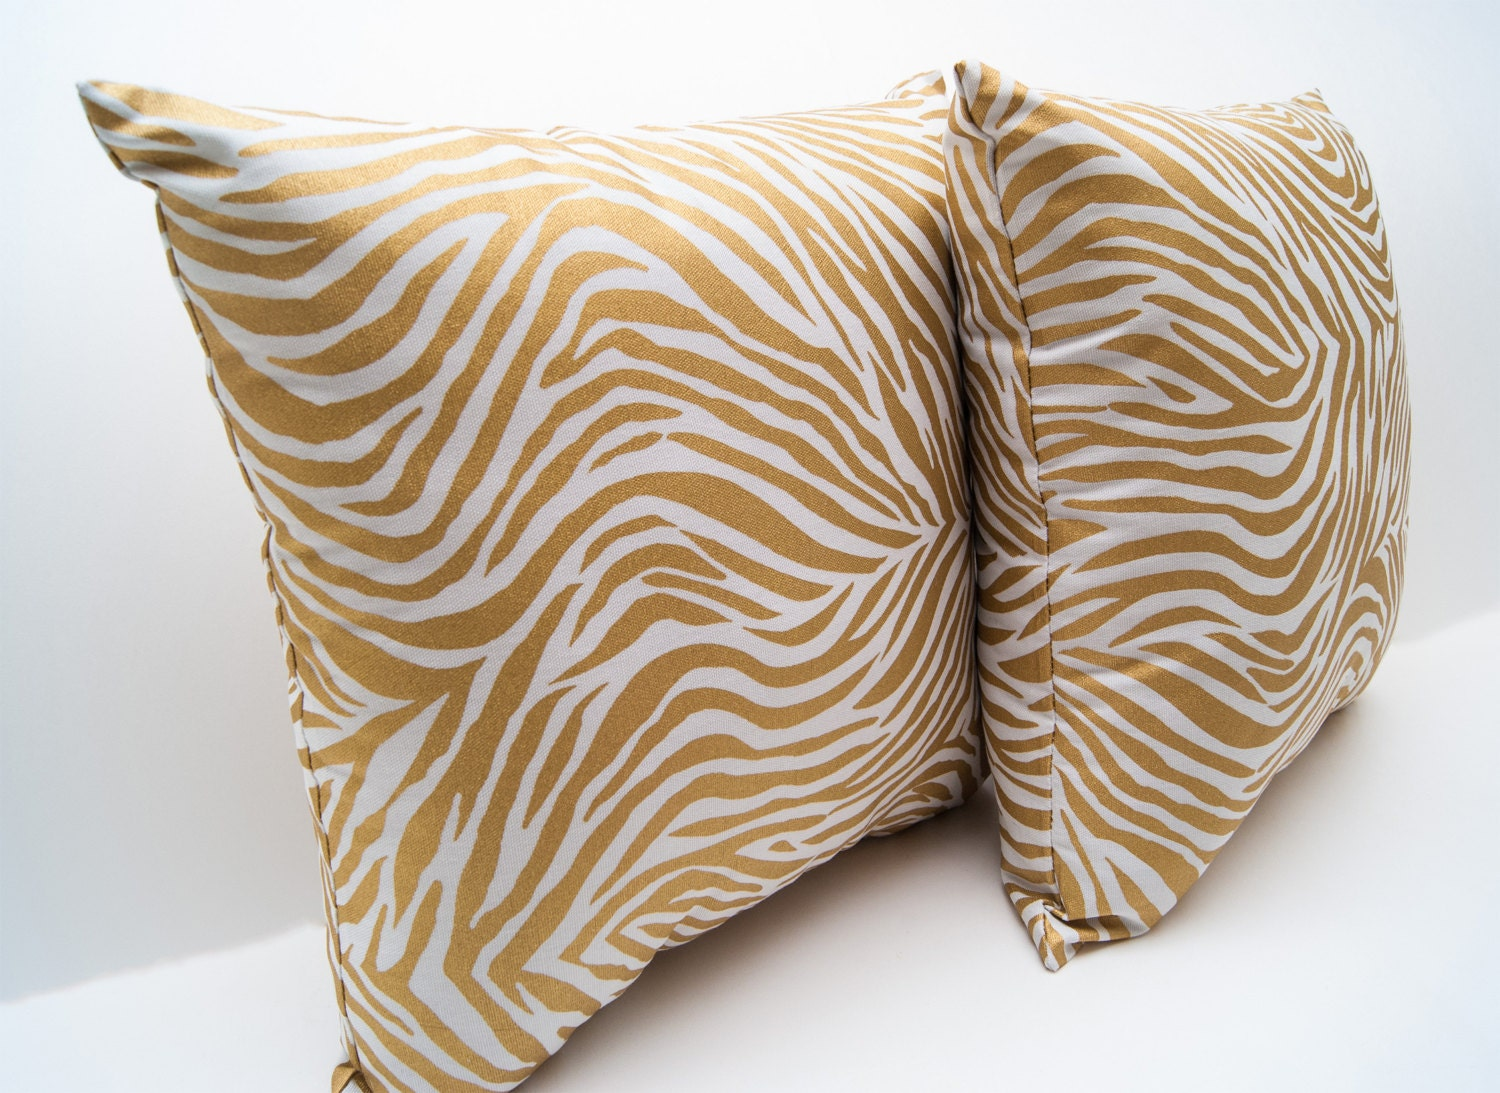 Animal Print Pillows For Couch : Throw Pillow Metallic Zebra Print Throw Pillow Accent